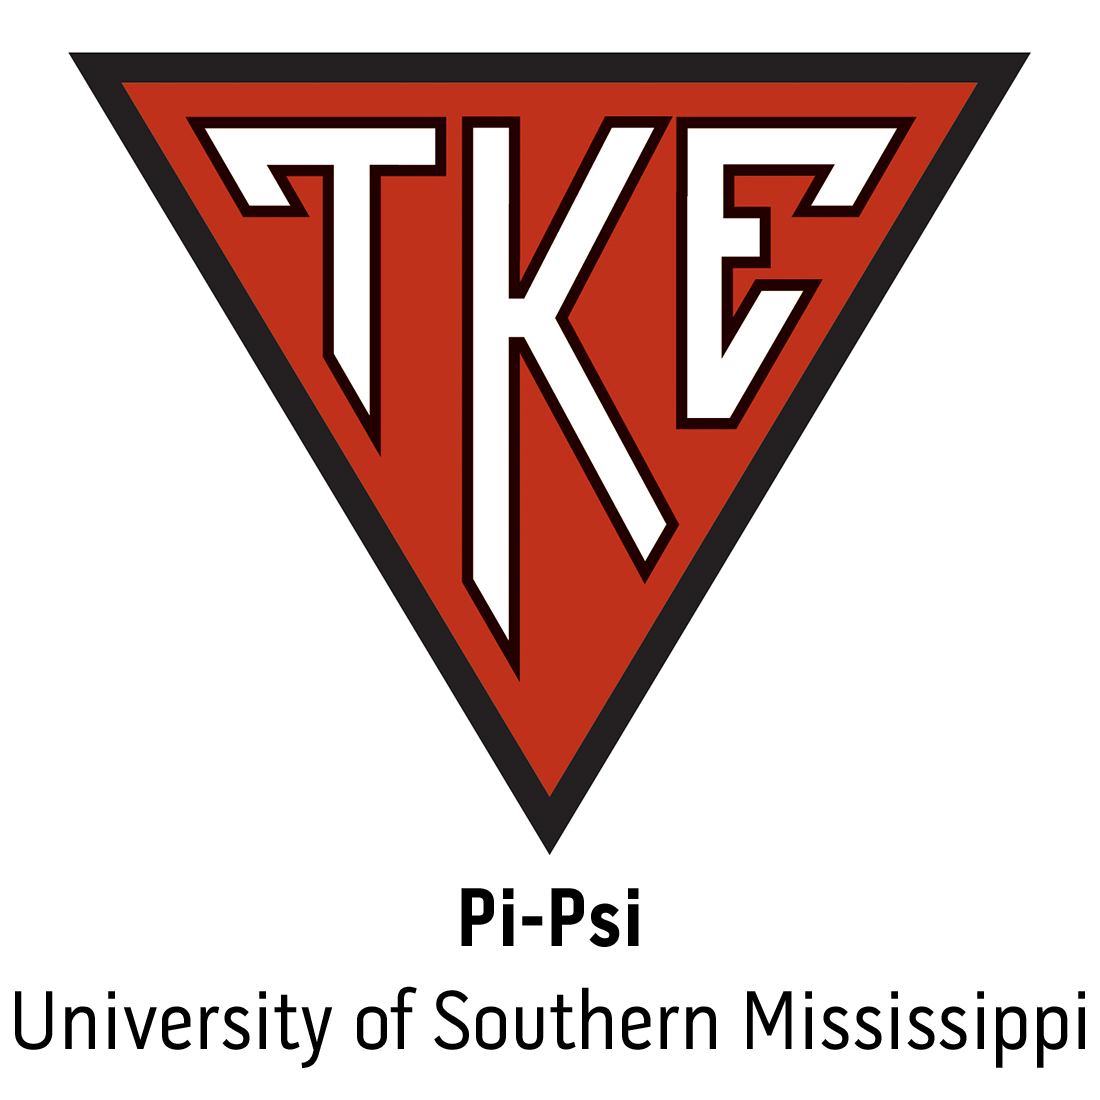 Pi-Psi Chapter at University of Southern Mississippi